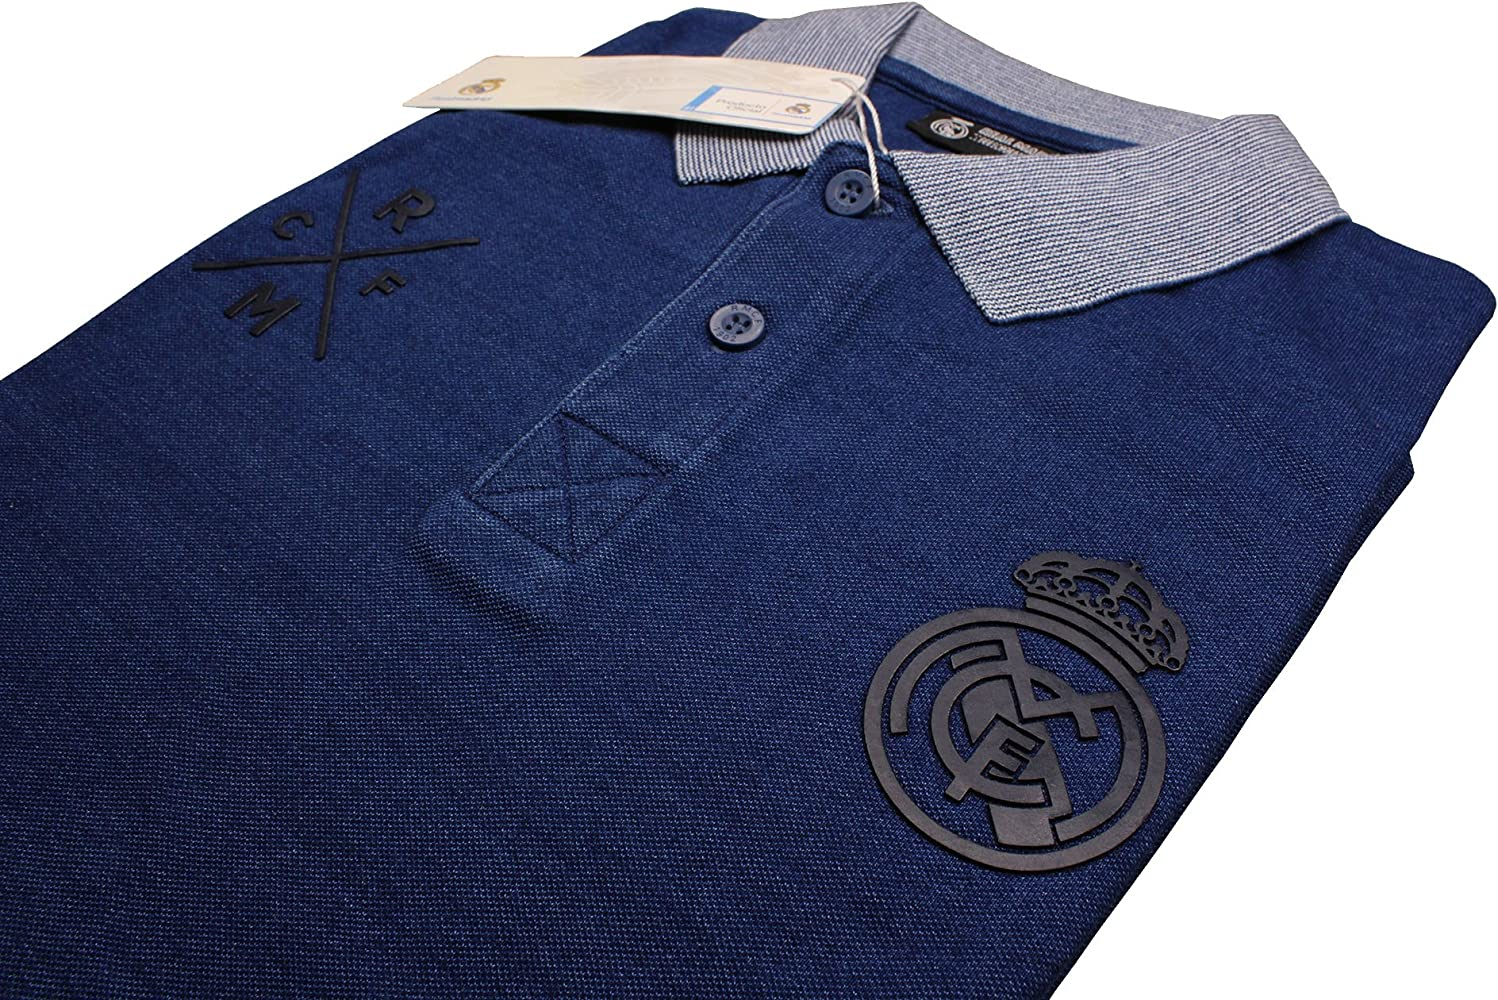 Real Madrid FC Polo Oficial Azul Marino/Gris (M): Amazon.es: Ropa ...